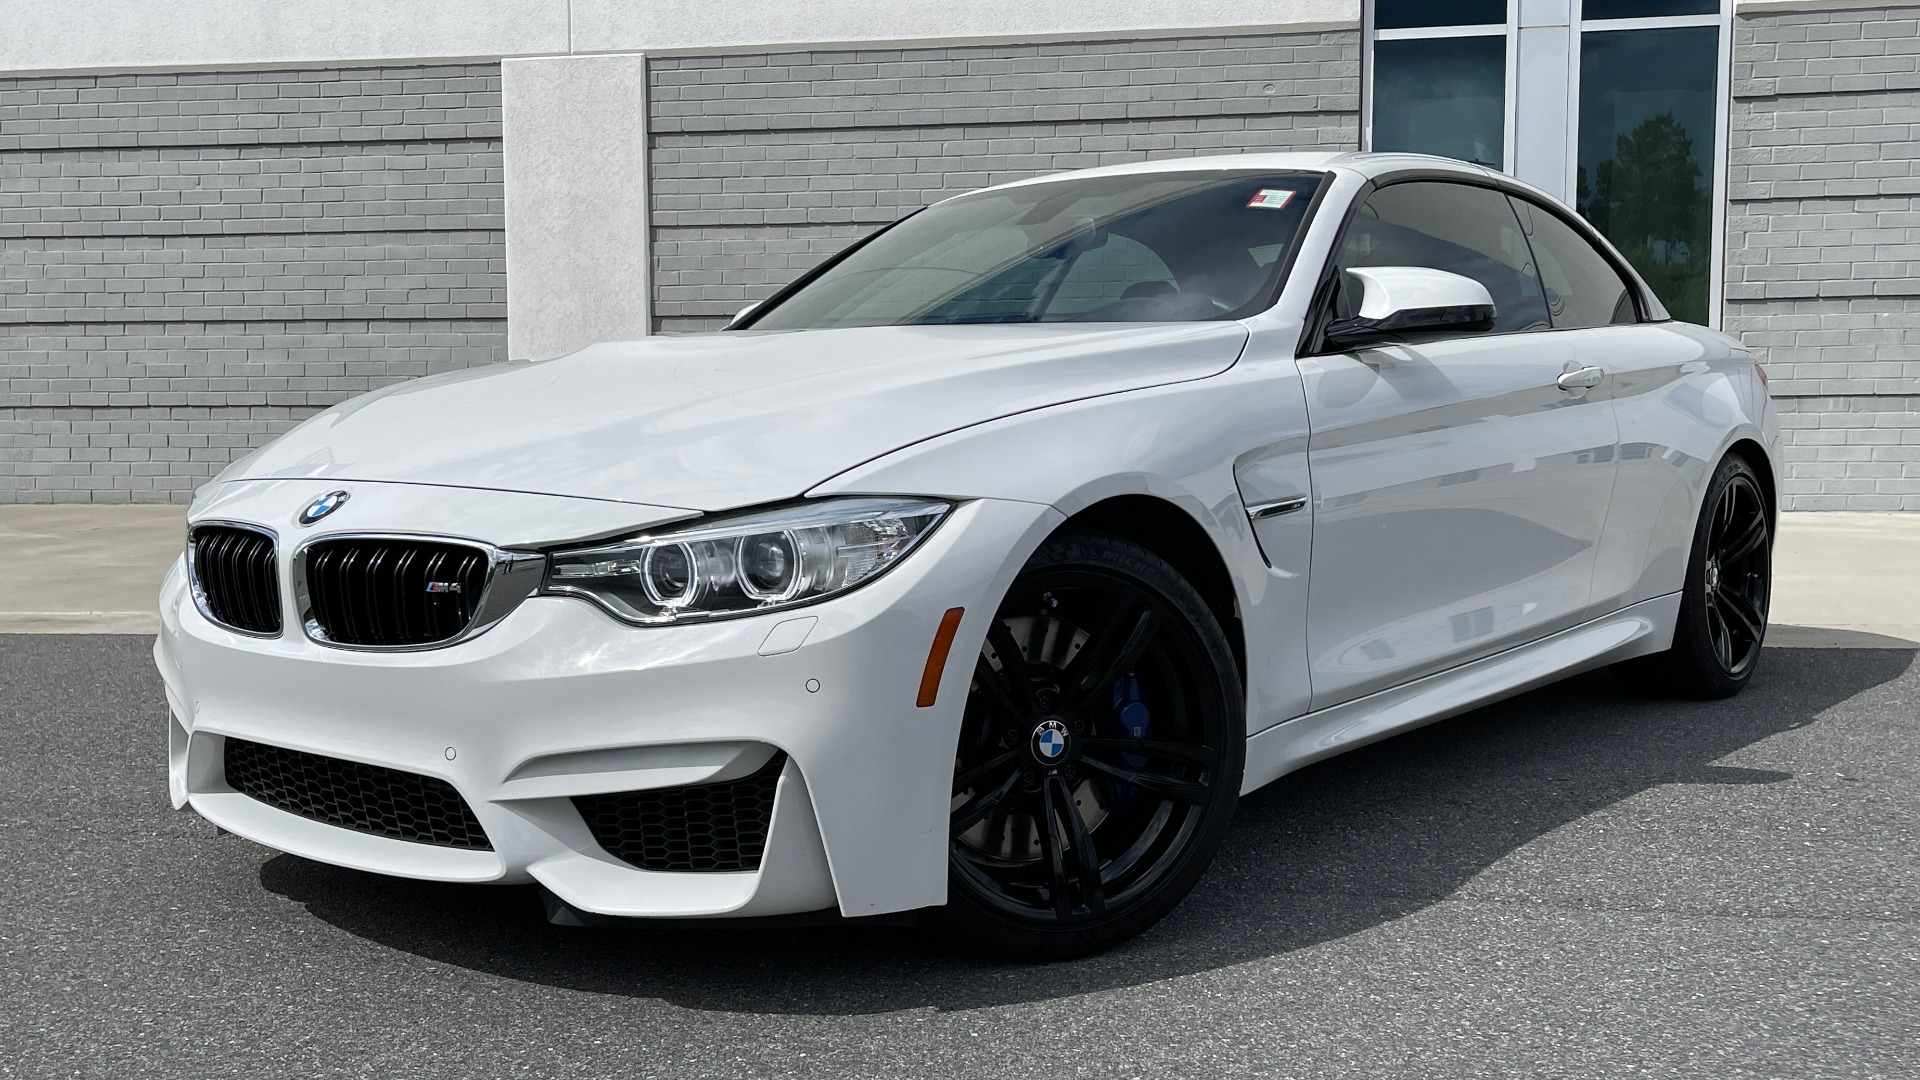 Used 2016 BMW M4 CONVERTIBLE 3.0L / 7-SPD AUTO / EXECUTIVE / ADAPT M SUSP / REARVIEW for sale $53,999 at Formula Imports in Charlotte NC 28227 20